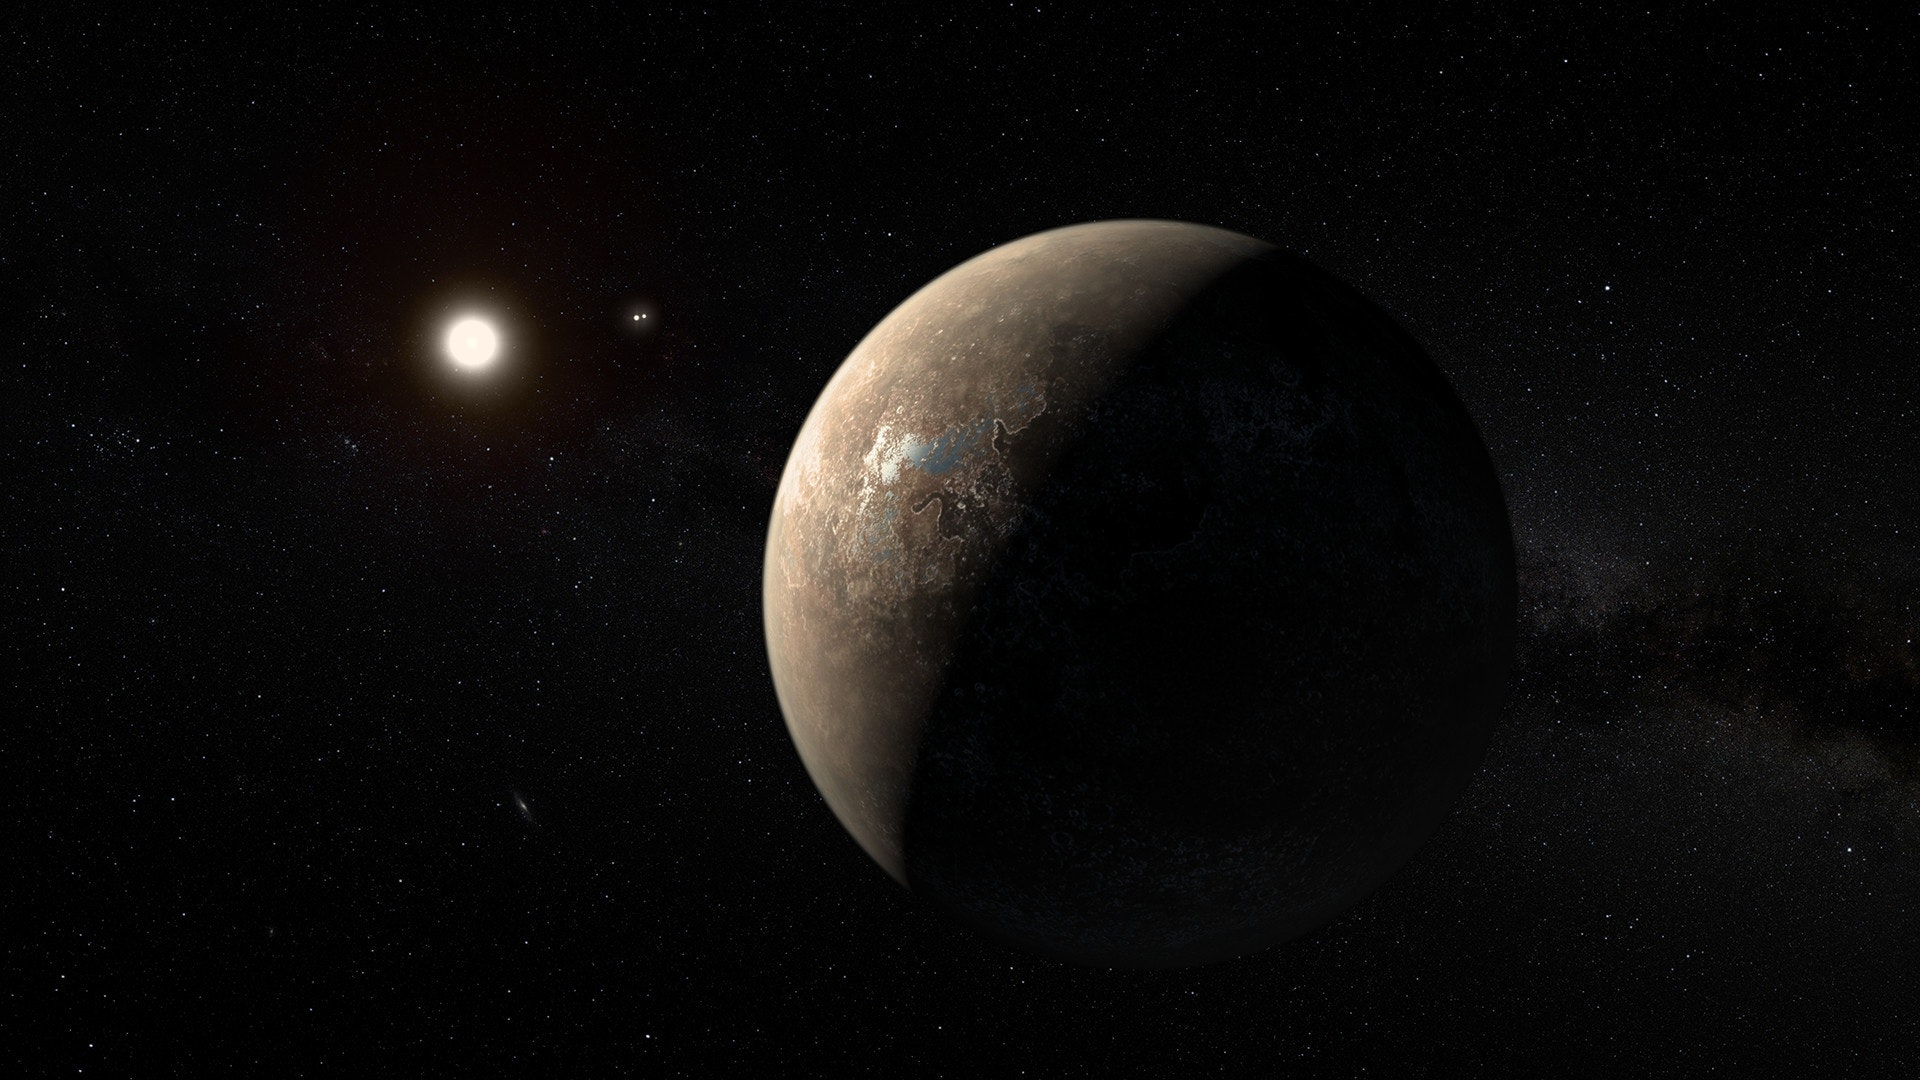 Help us find out what our possibly habitable exoplanet neighbour is actually like